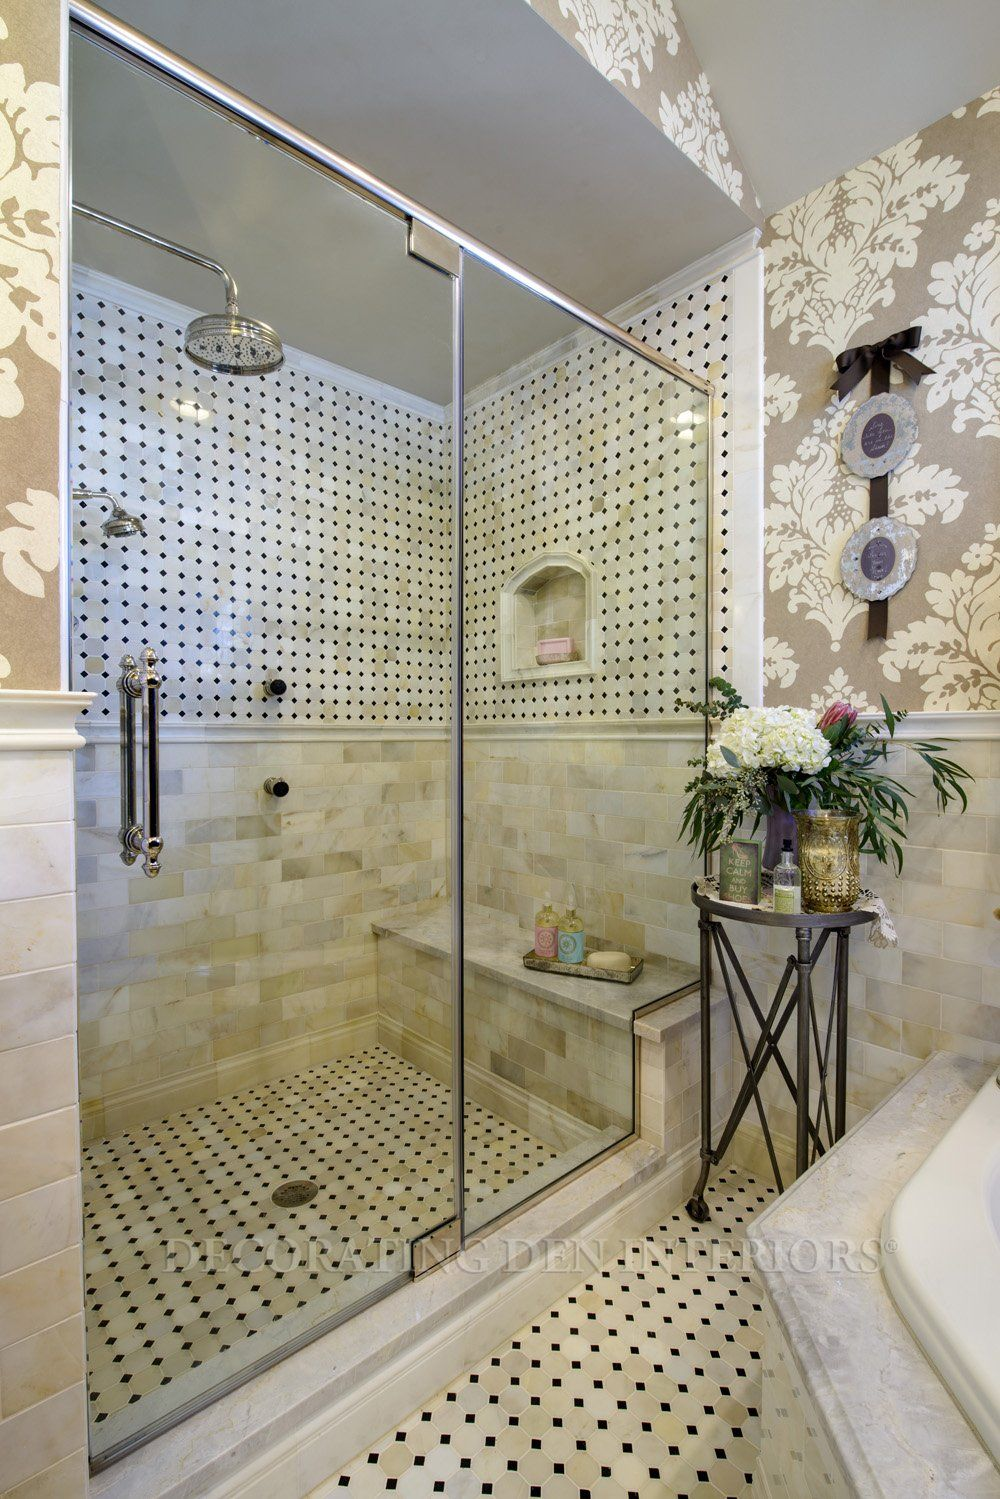 Bathroom Designsdecorating Den Interiorswant This Look Call Mesmerizing Bathroom Design Website Inspiration